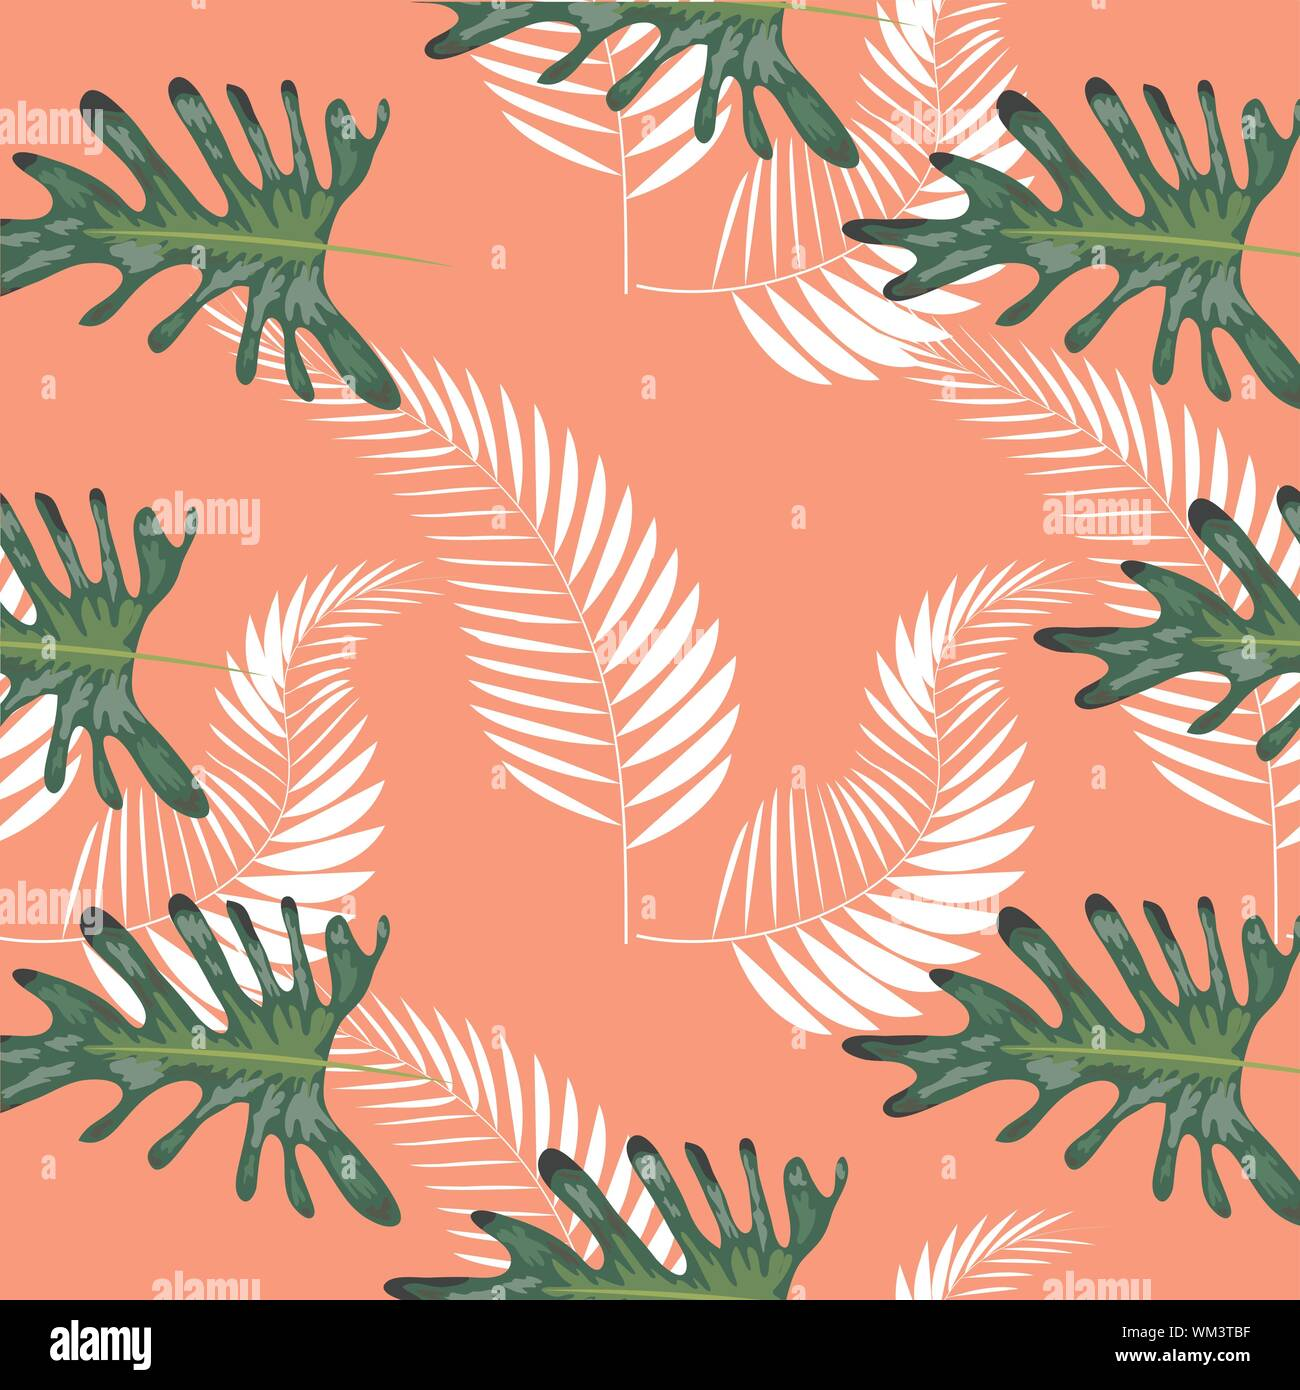 Tropical Leaves Palms Monstera Leaf Floral Seamless Pattern Background Stock Vector Image Art Alamy Learn how to paint monstera plant in this free step by step acrylic painting tutorial by angela anderson. alamy